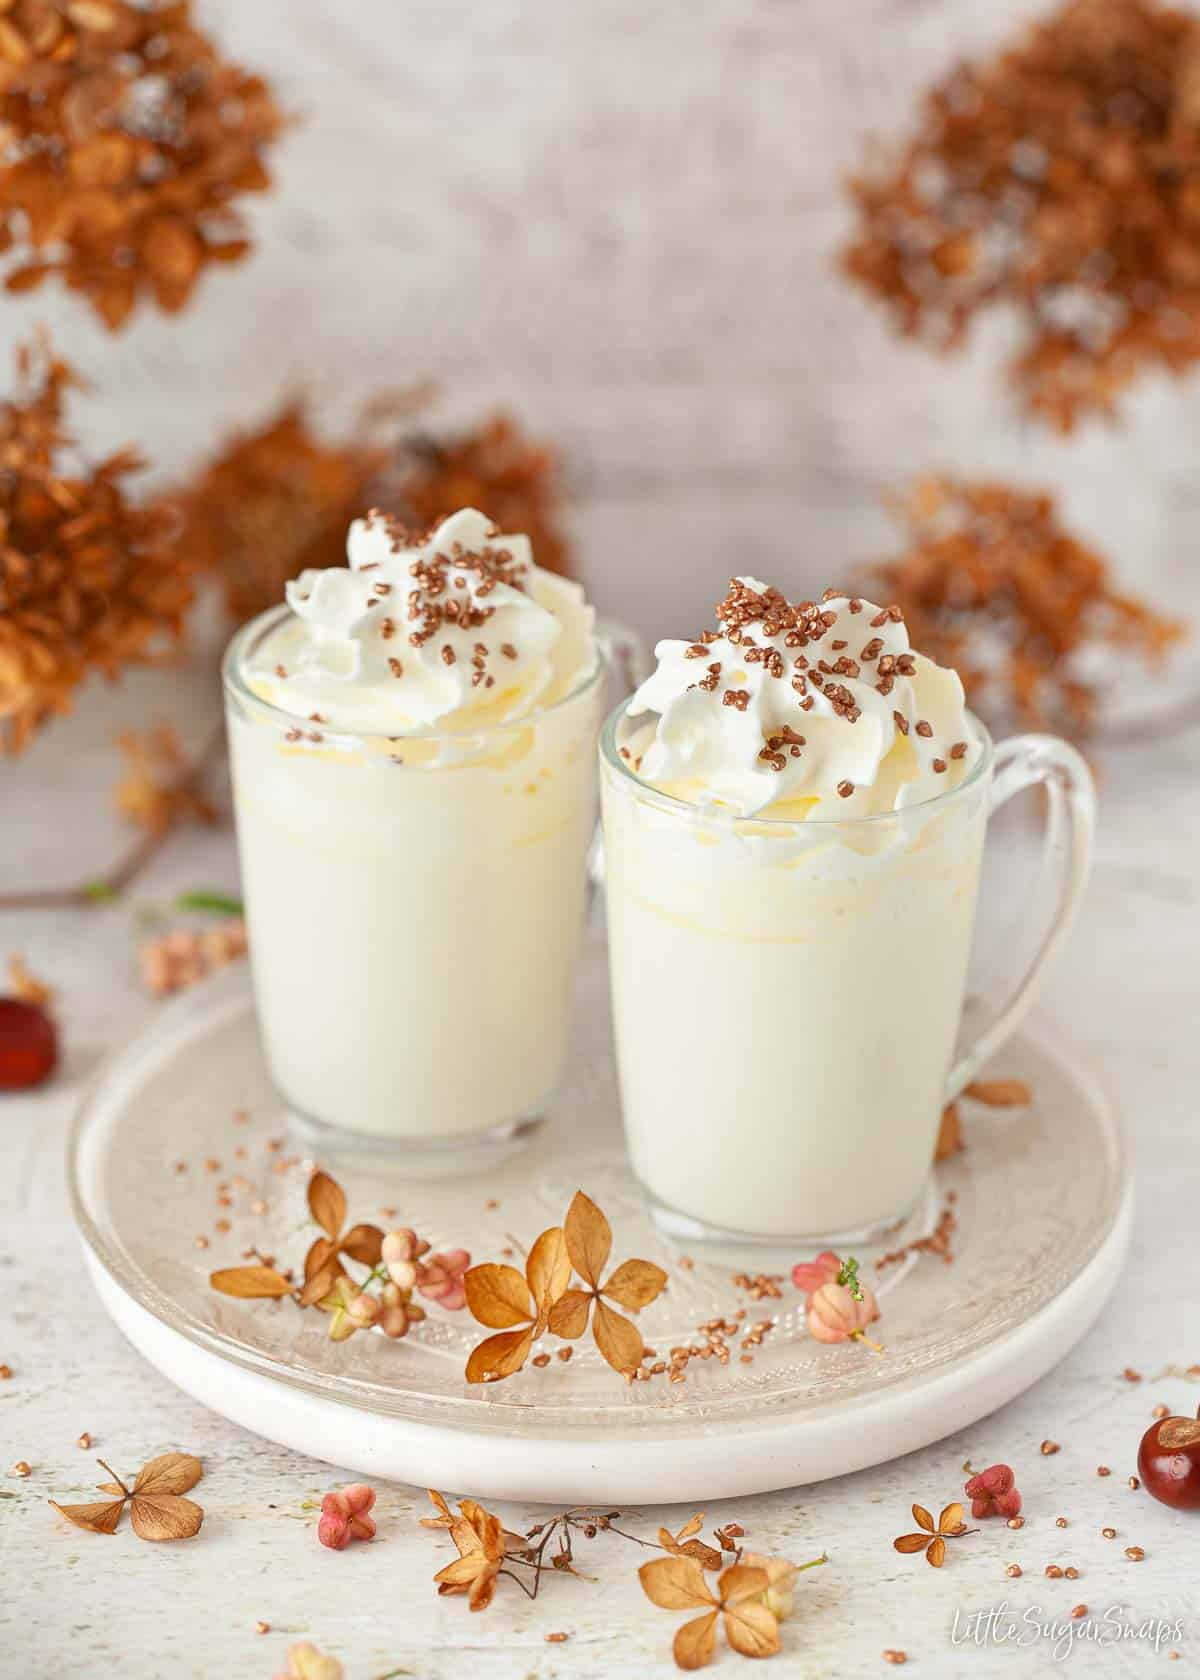 Two glass mugs of white hot chocolate with cream and bronze sprinkles